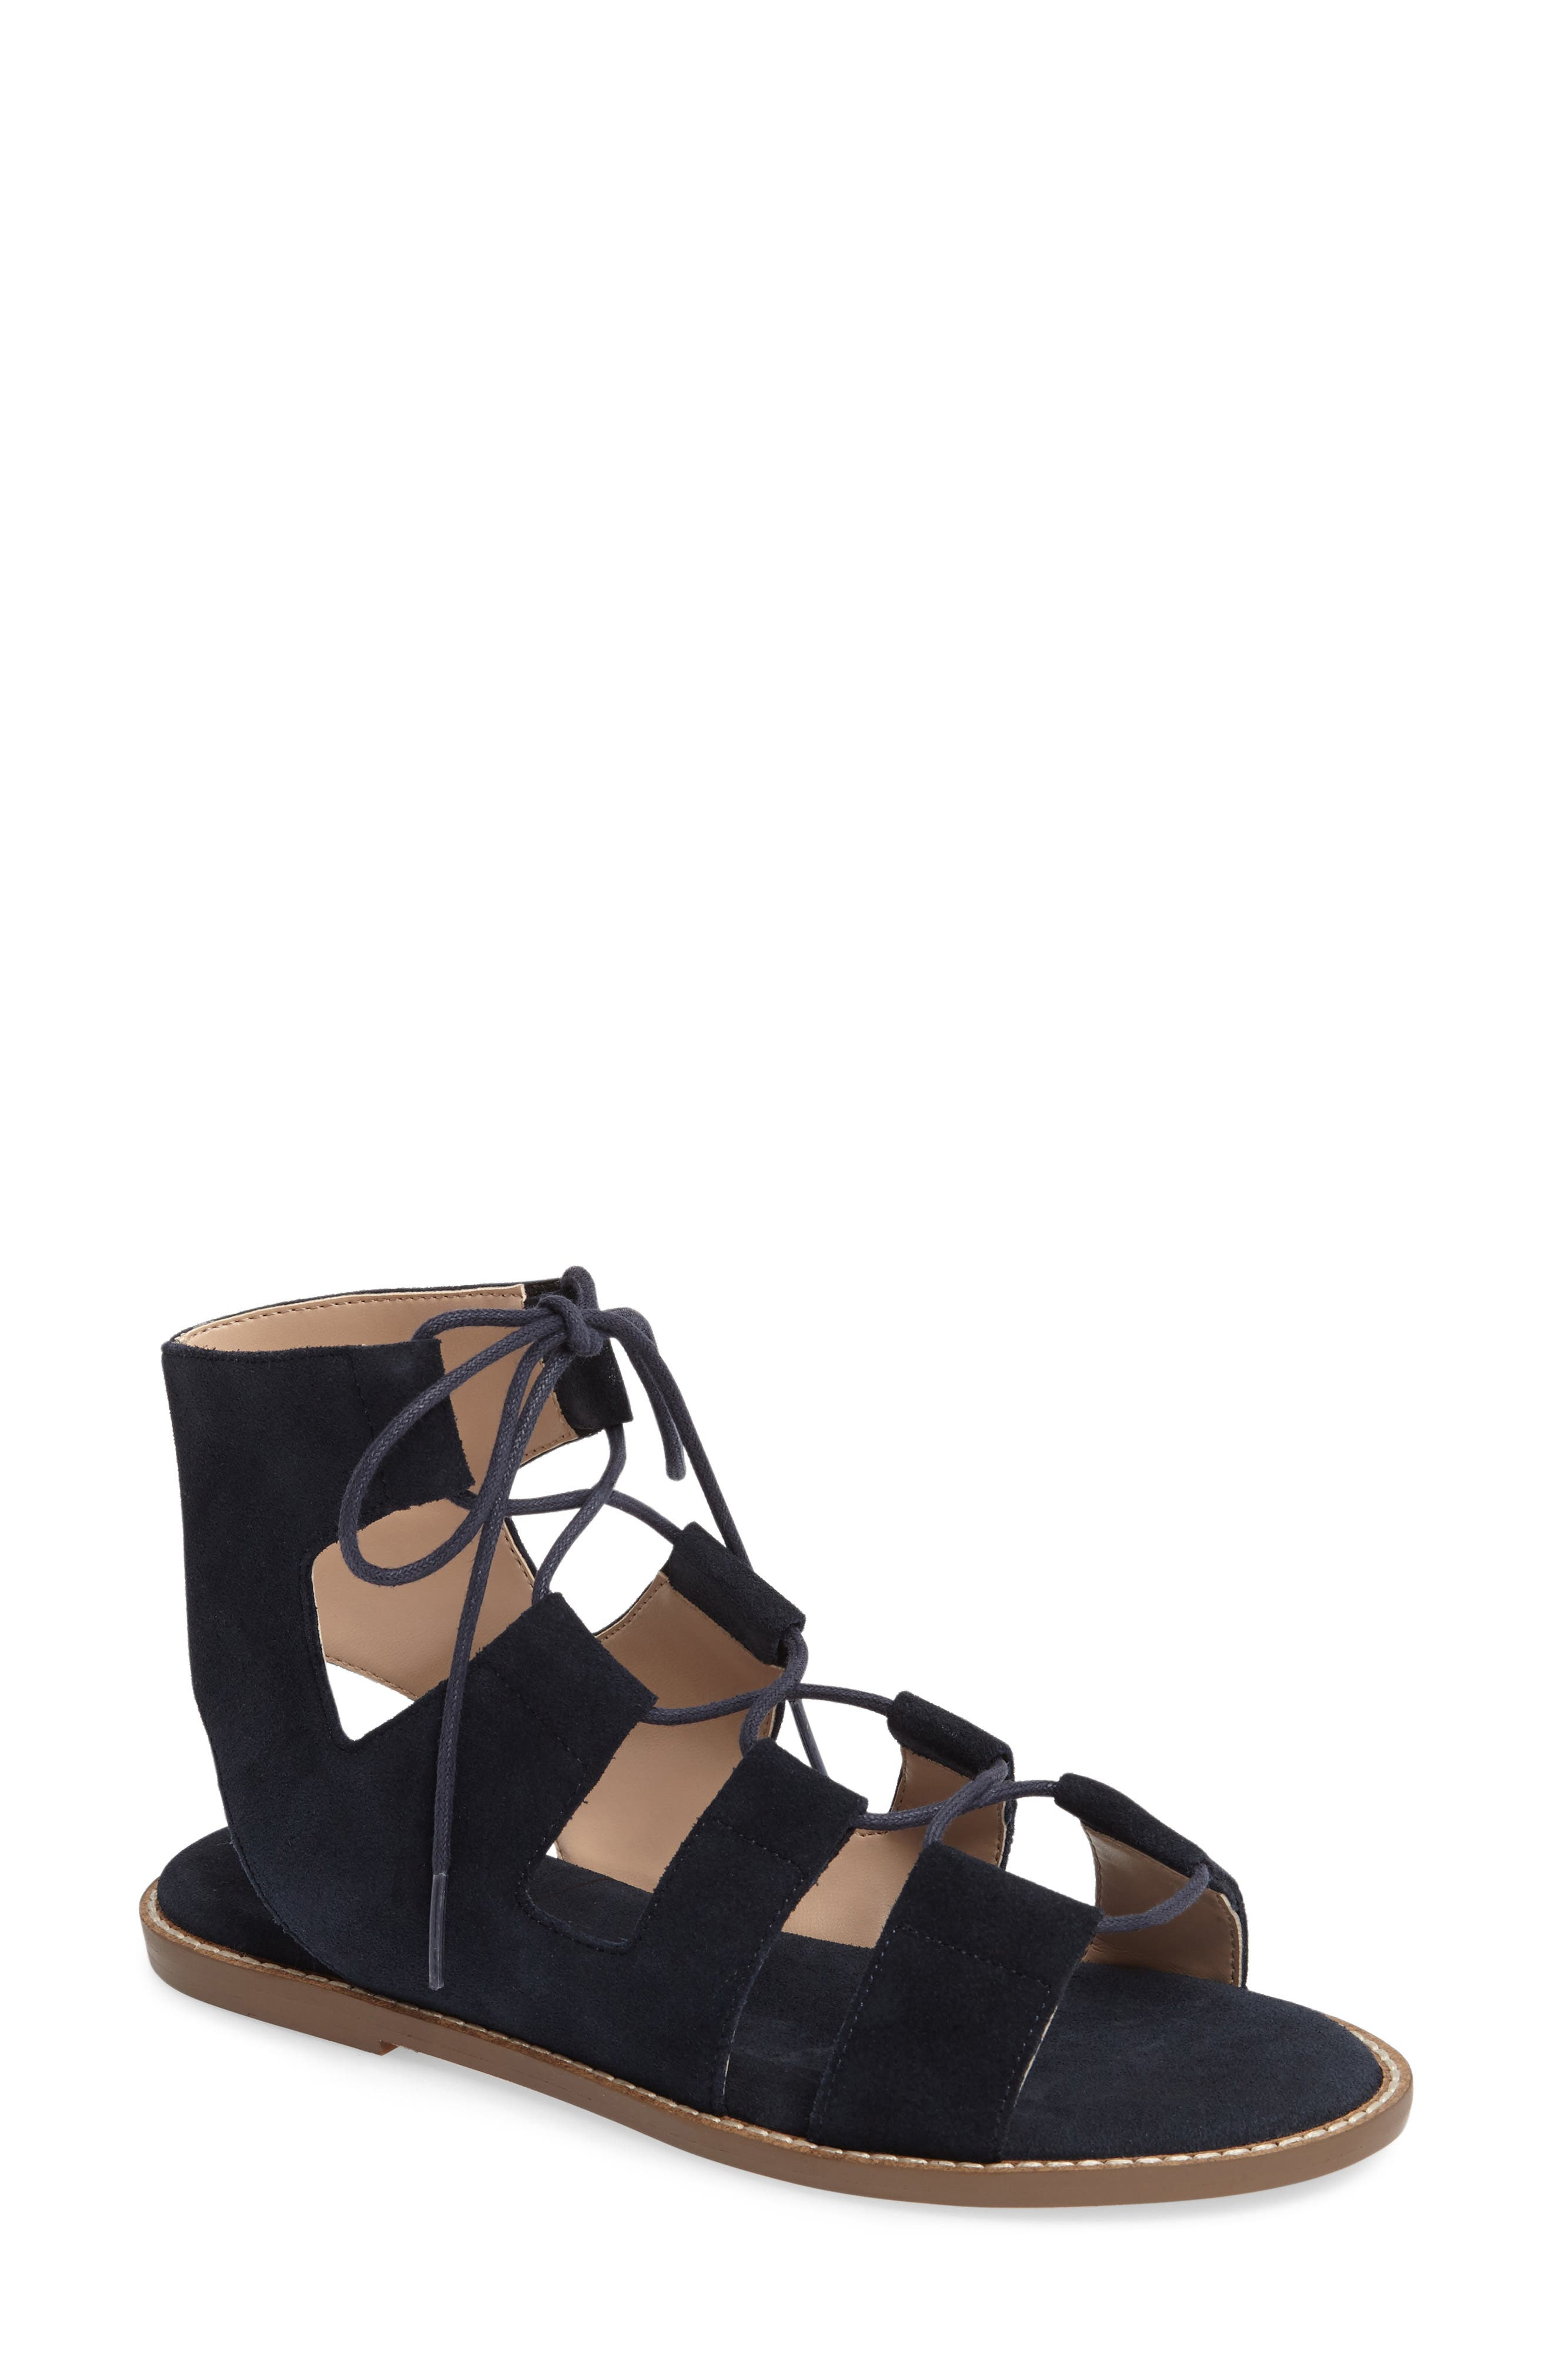 Sole Society 'Cady' Lace-Up Flat Sandal (Women)